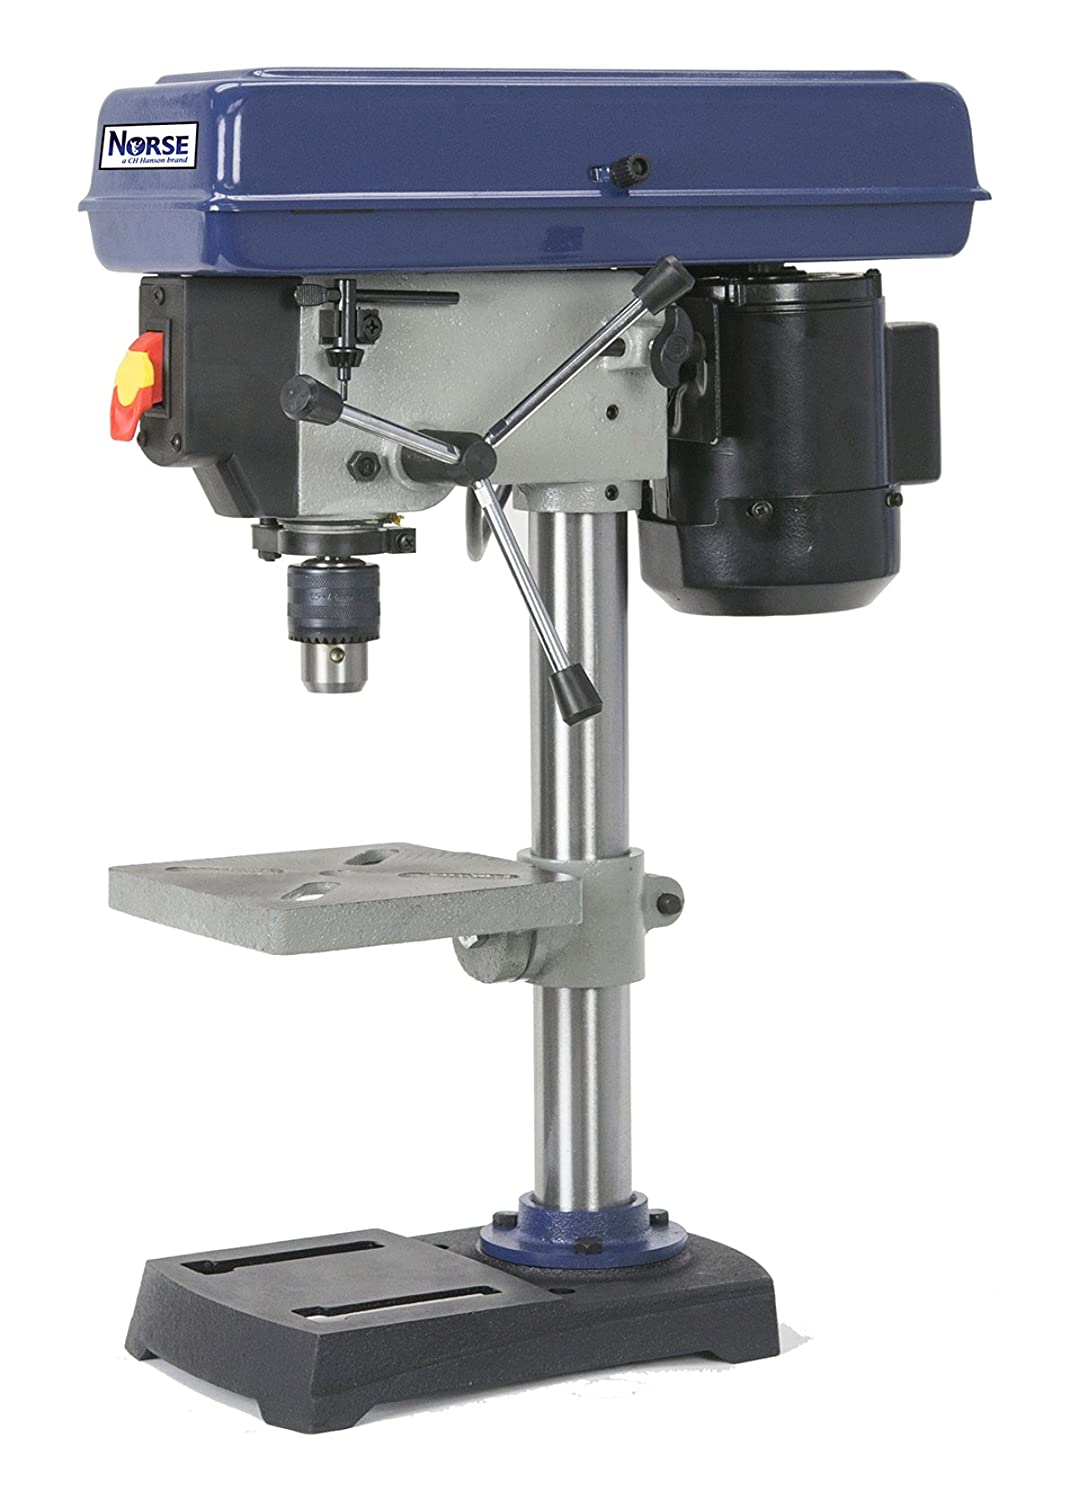 Norse 9680202 Bench Top Drill Press CH Hanson